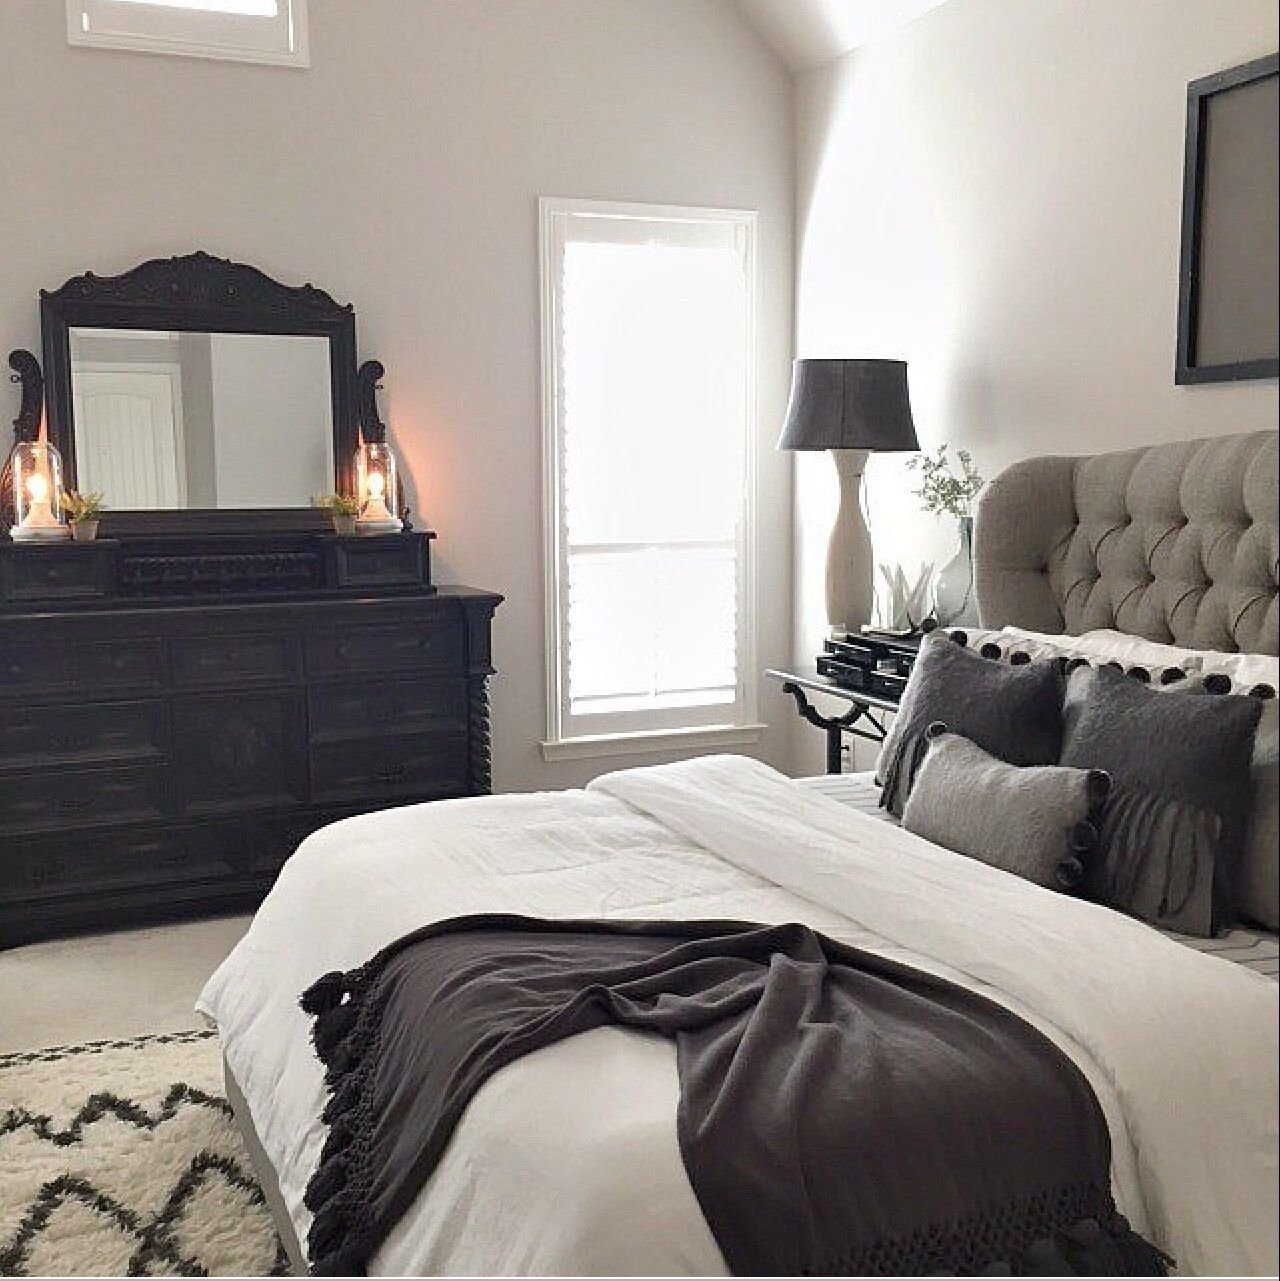 10 Perfect Black And Gray Bedroom Ideas master bed tufted grey headboard future house decor pinterest 2